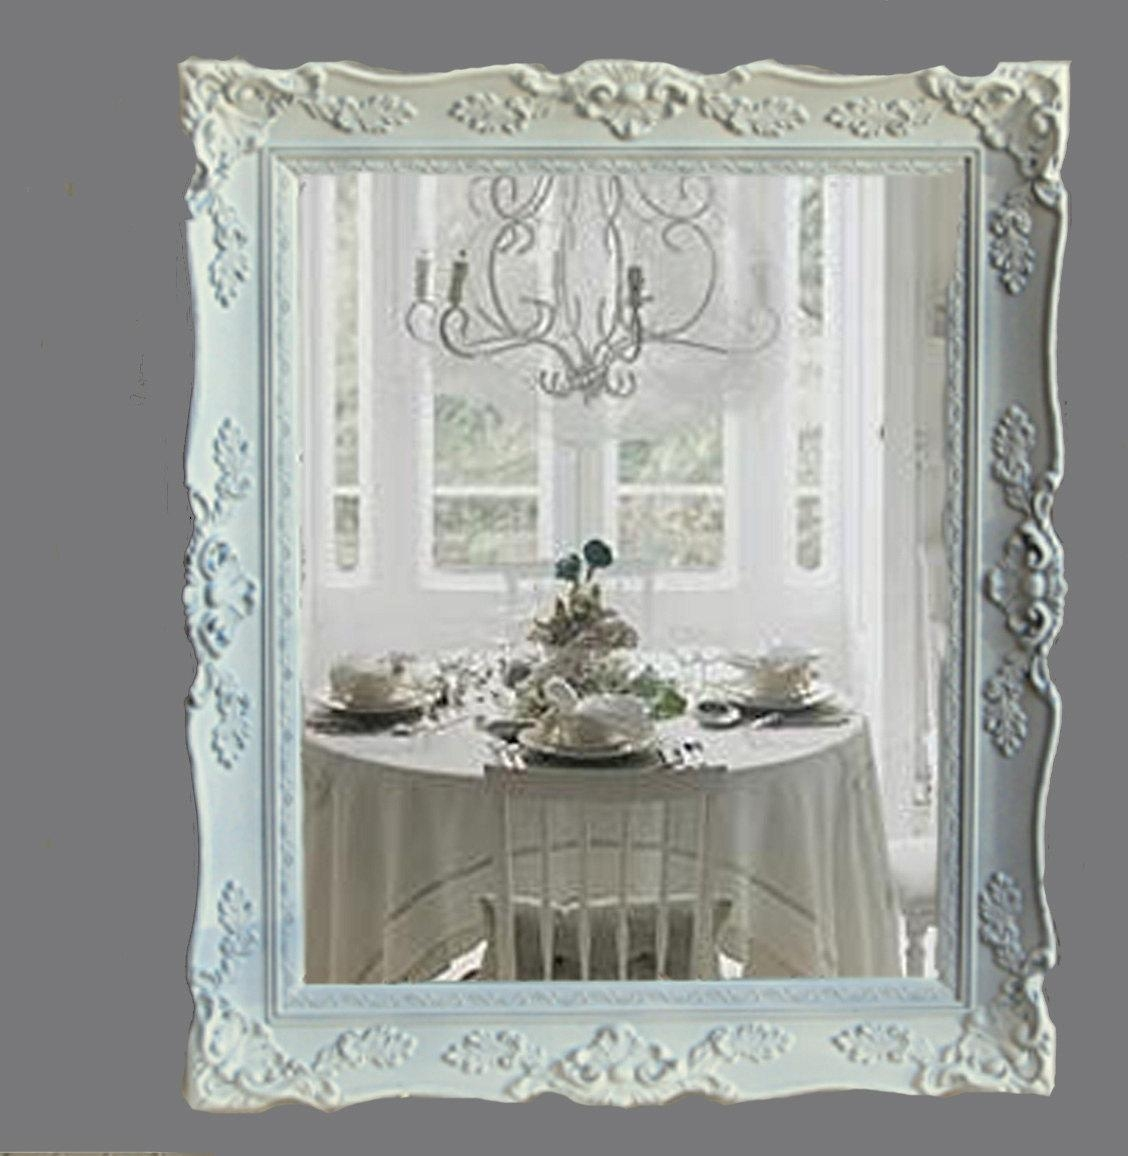 Shabby Chic Mirrors Images – Reverse Search With Regard To Chabby Chic Mirror (Image 15 of 20)